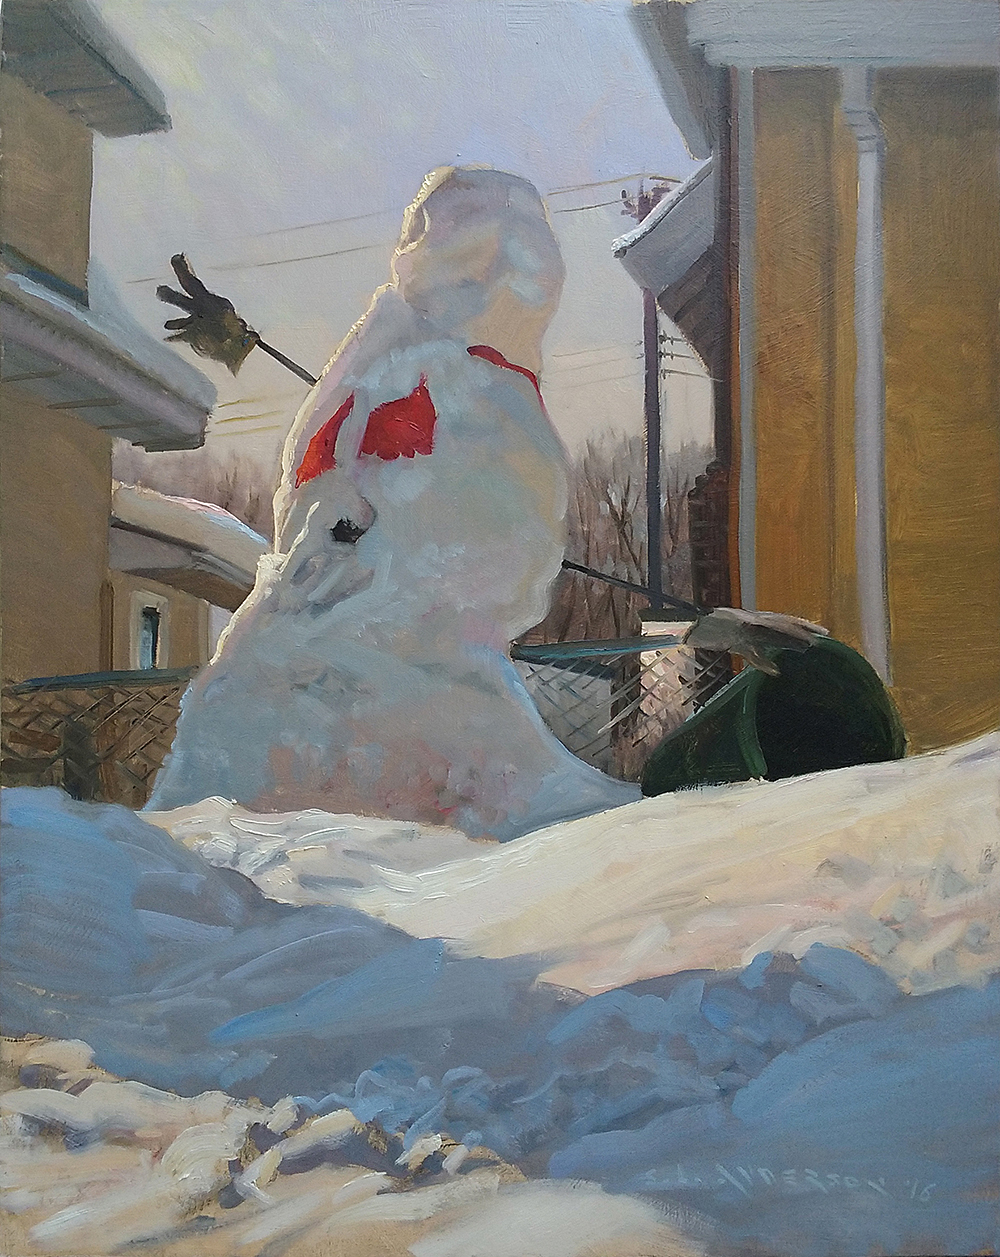 Snowperson 11, The Entertainer  30 x 24 oil on panel